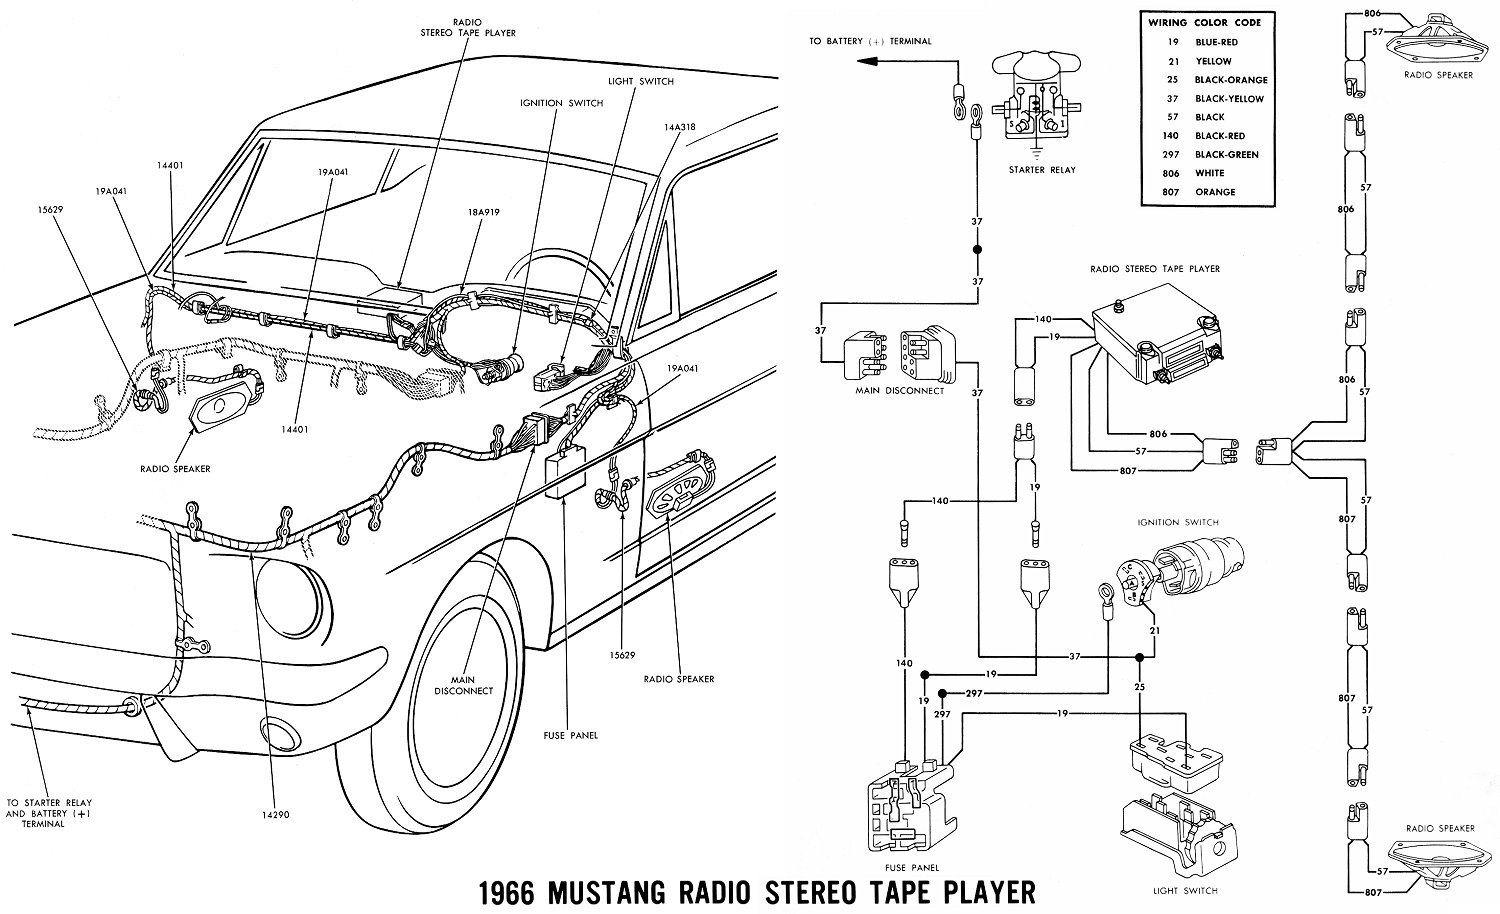 1966 Mustang Wiring Diagrams on 1968 Mustang Ignition Switch Wiring Diagram